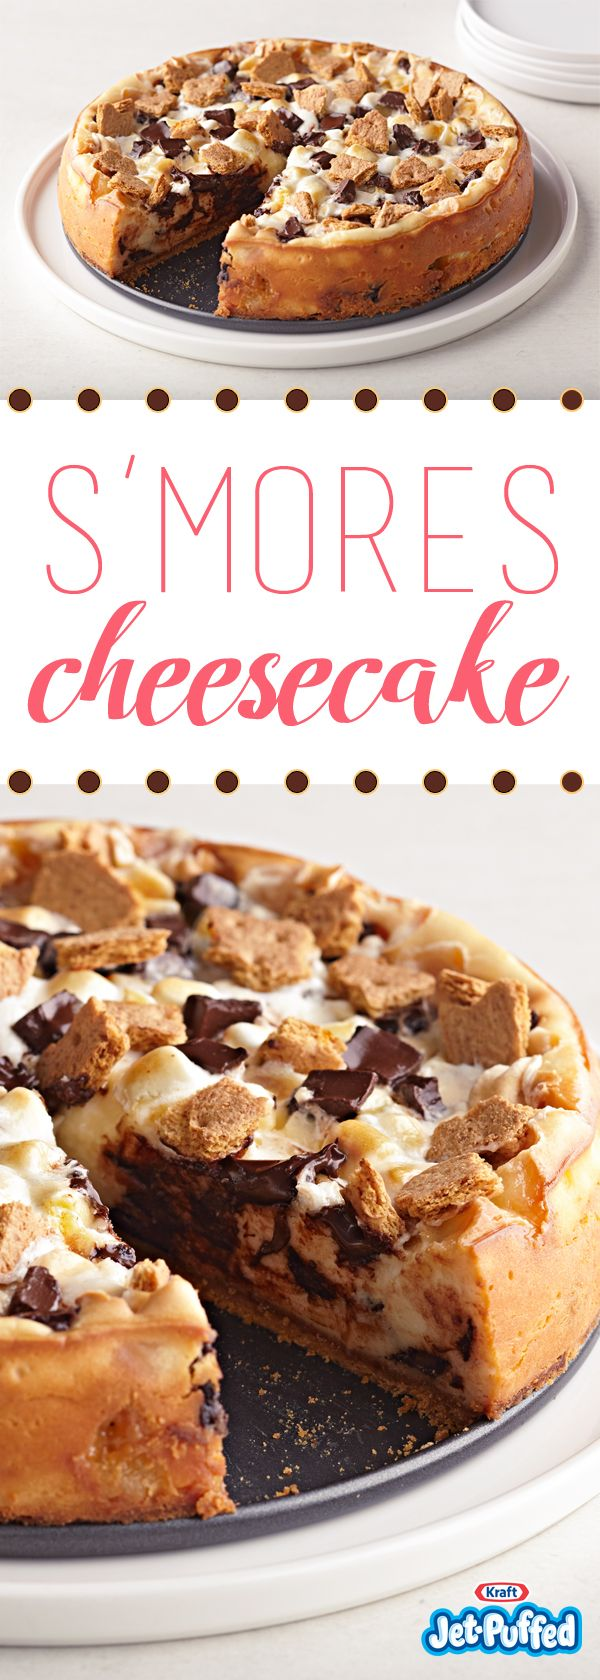 S'mores Cheesecake!